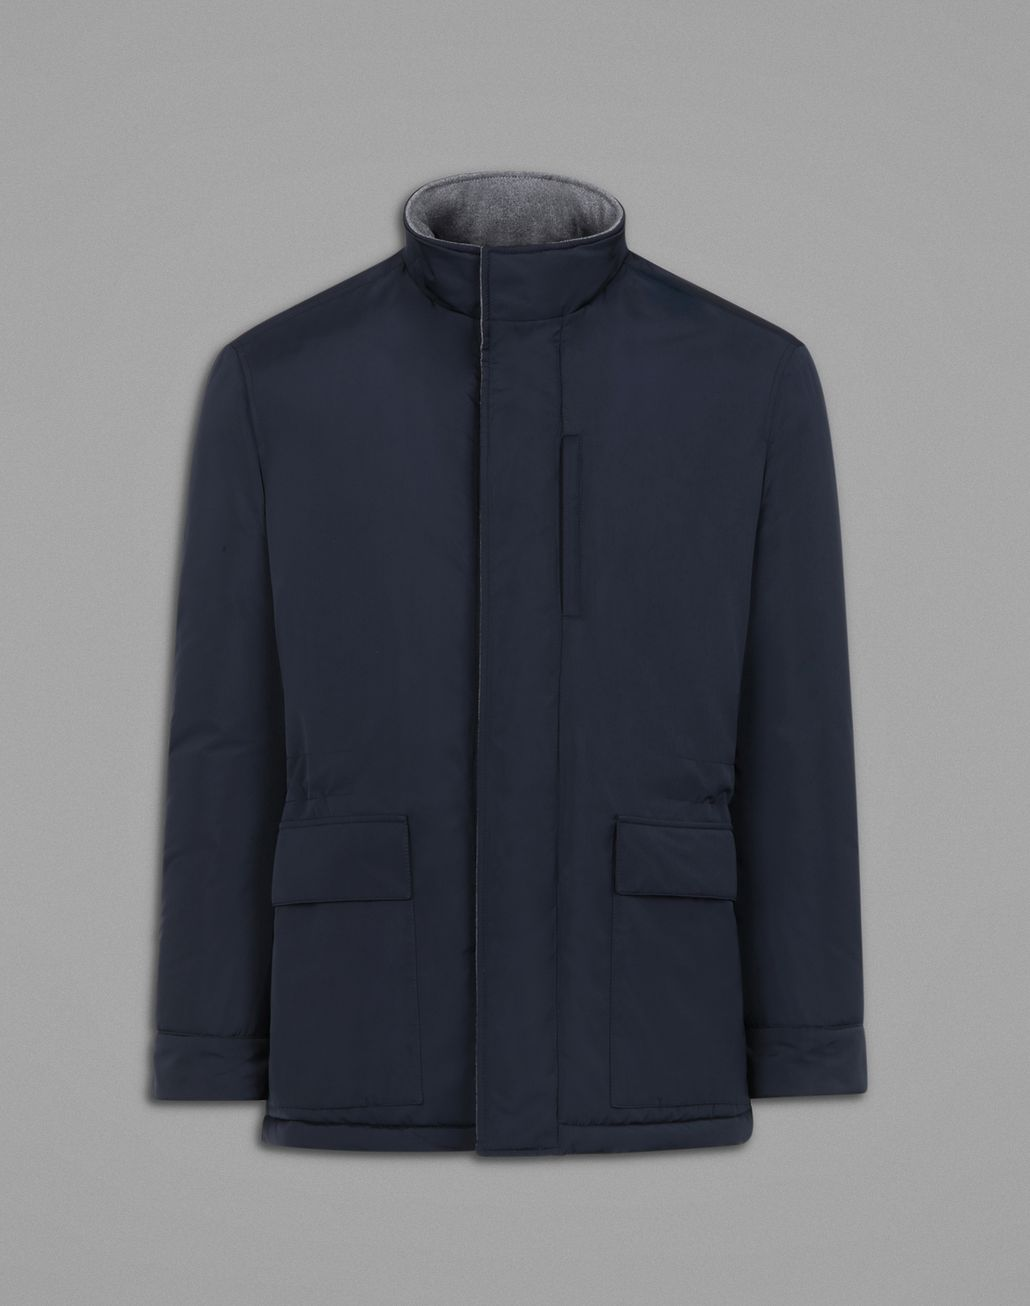 BRIONI Field-Jacket in Blau Suits & Jackets Herren f